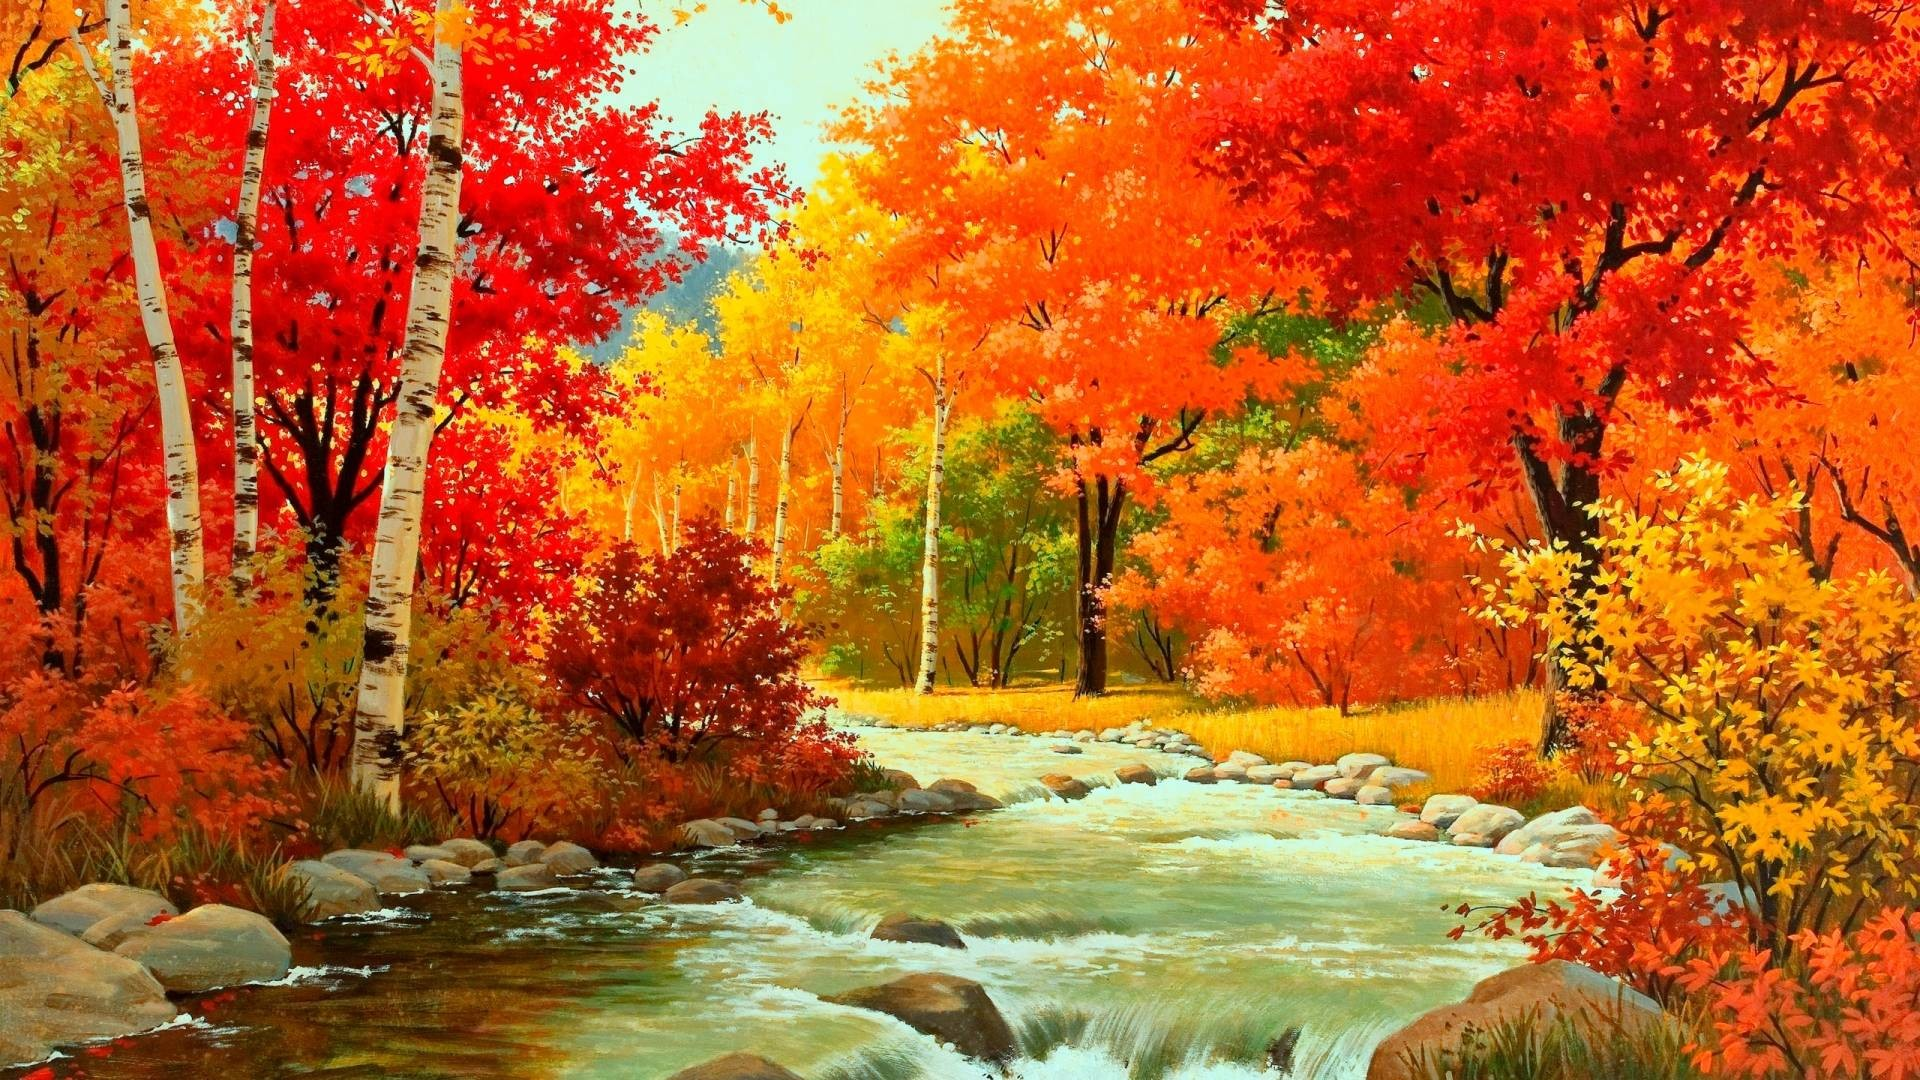 1920x1080 Natural Autumn Landscape HD Wallpapers Background